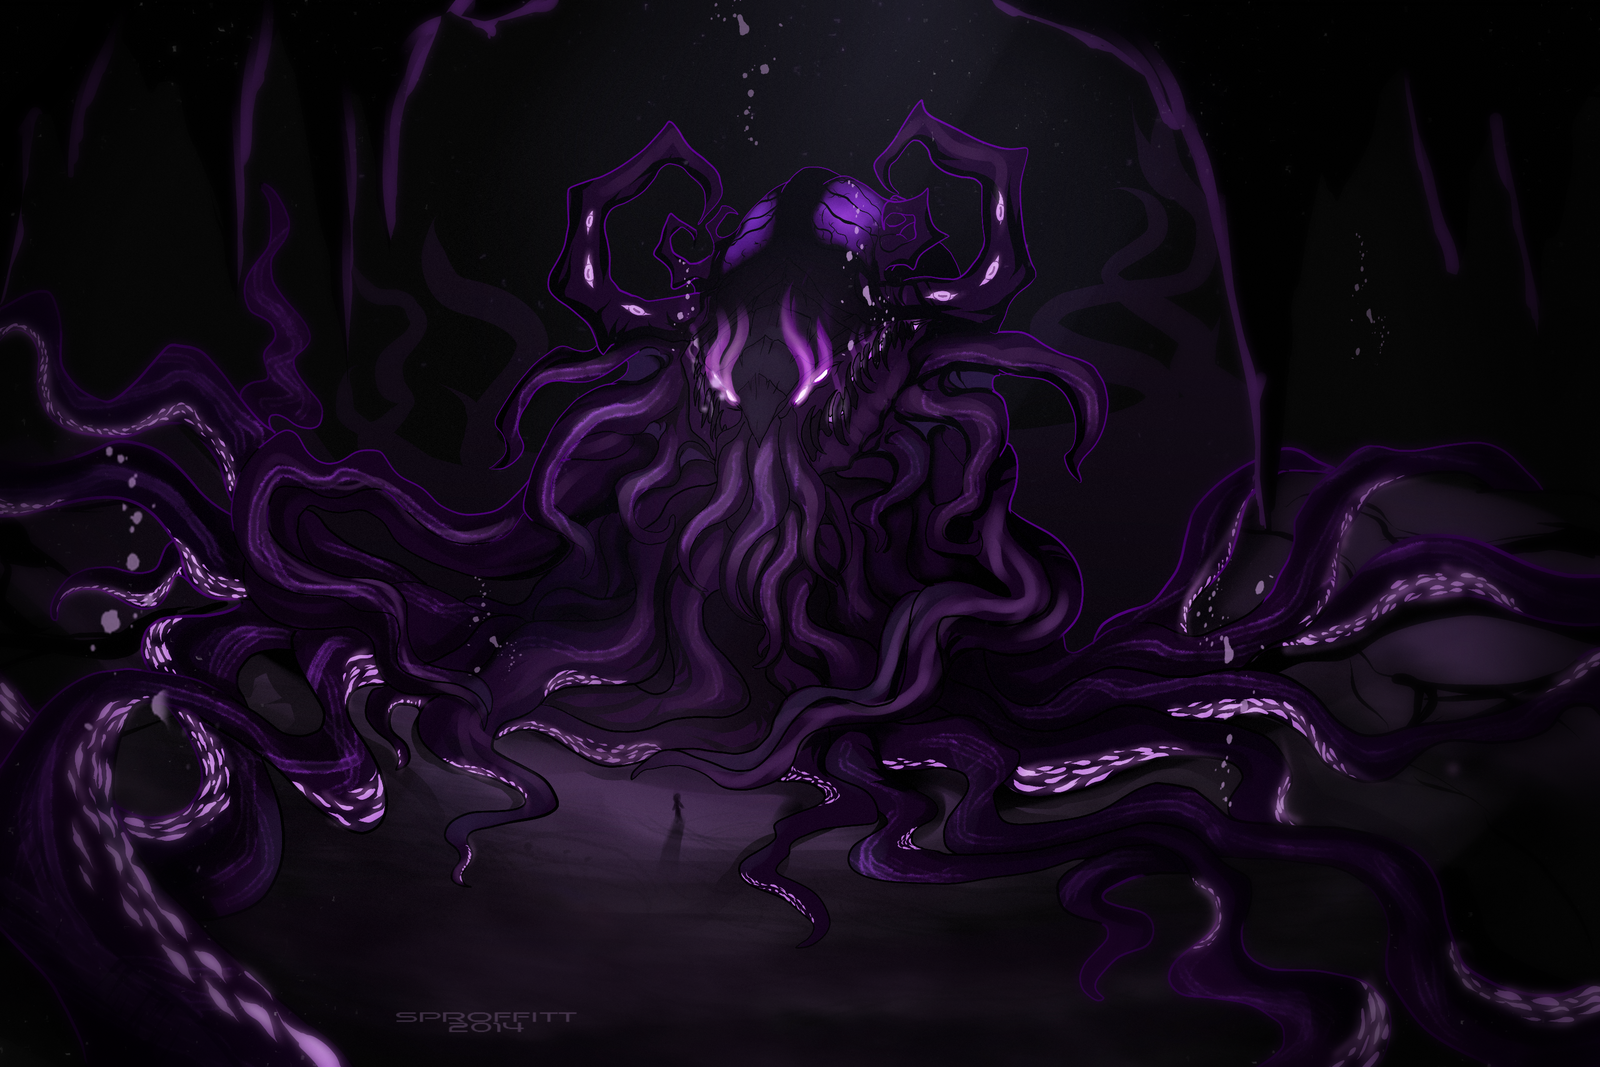 https://img10.deviantart.net/8620/i/2014/304/6/1/n_zoth_by_sproffitt-d84flp6.png